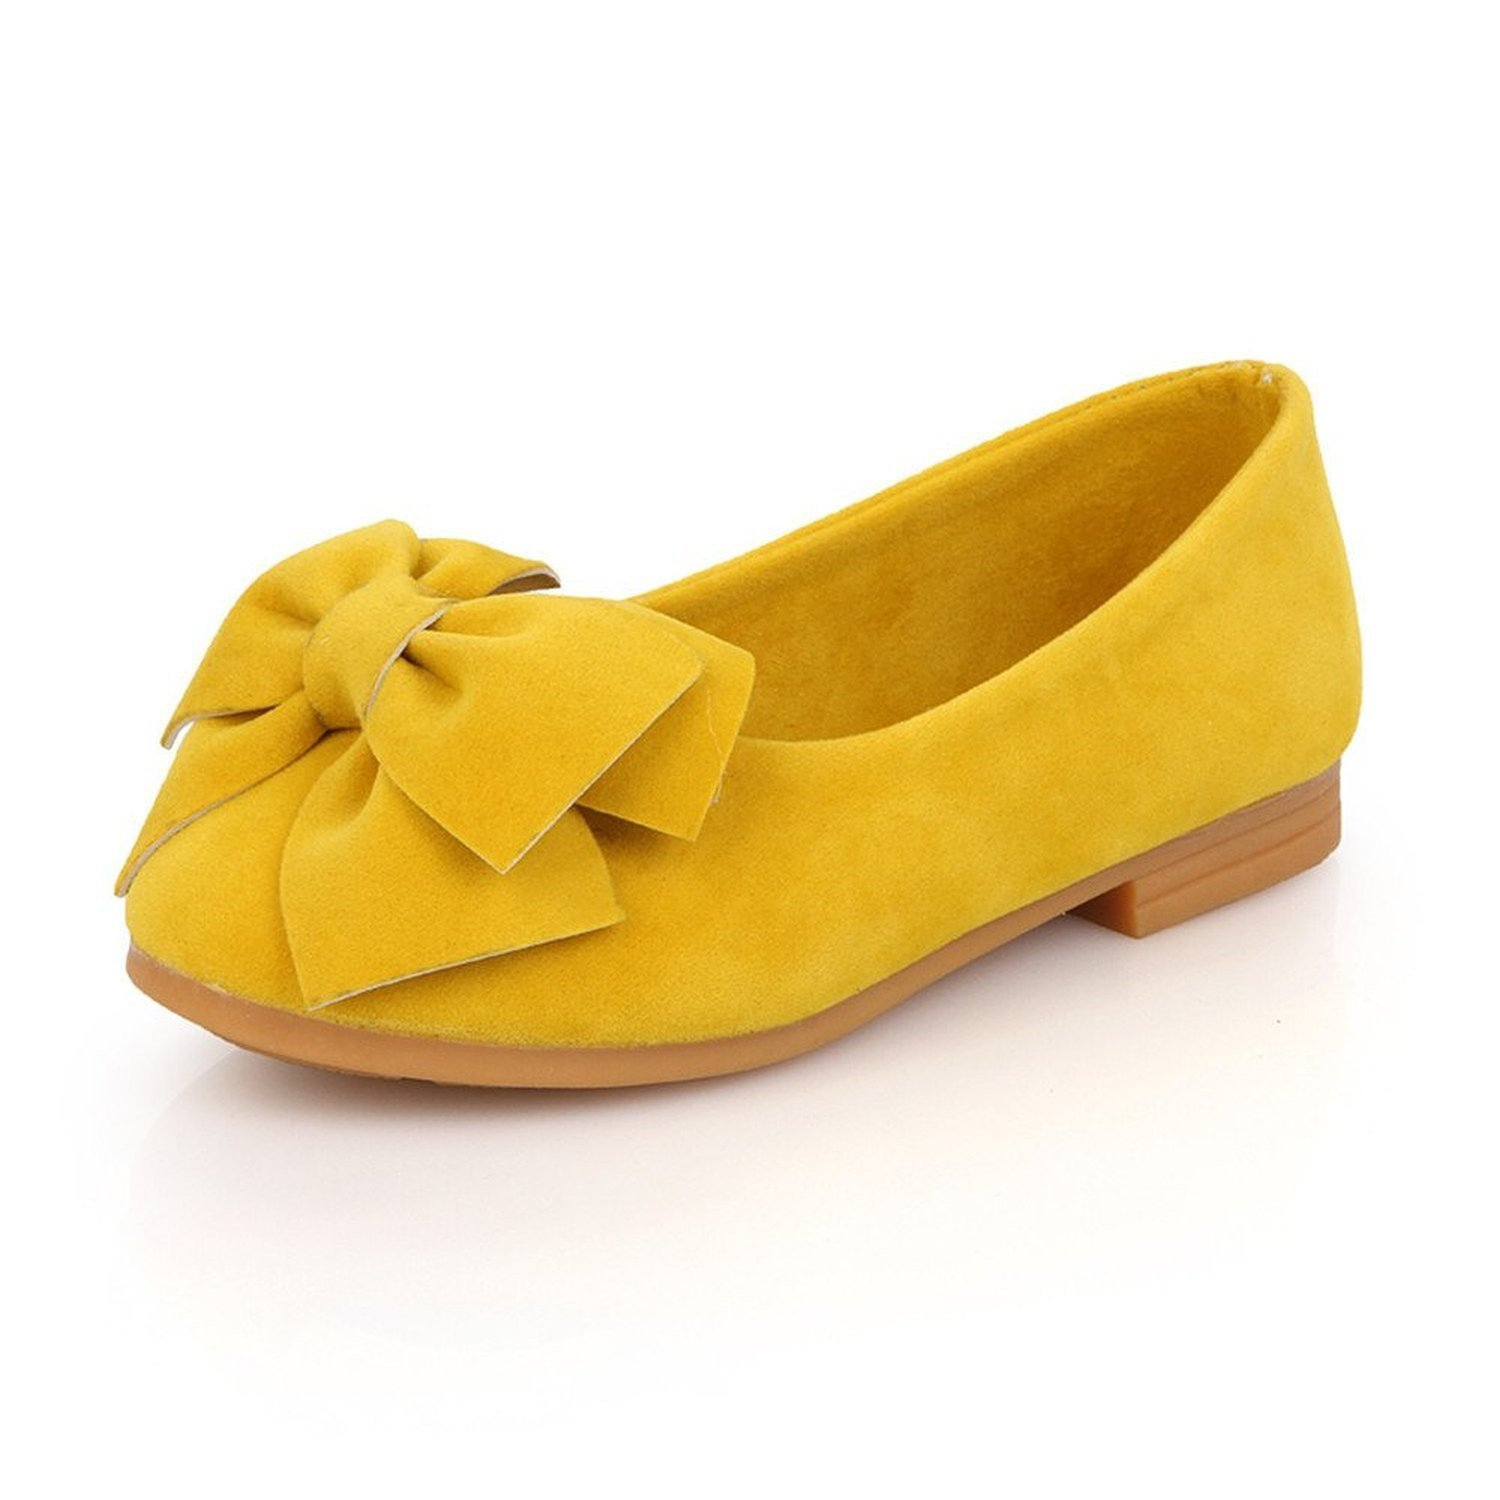 Bumud Girl's Adorable Bow Slip On Ballerina Flat Dress Shoe(Toddler/ Little Kids) (12 M US Little Kid, Yellow)